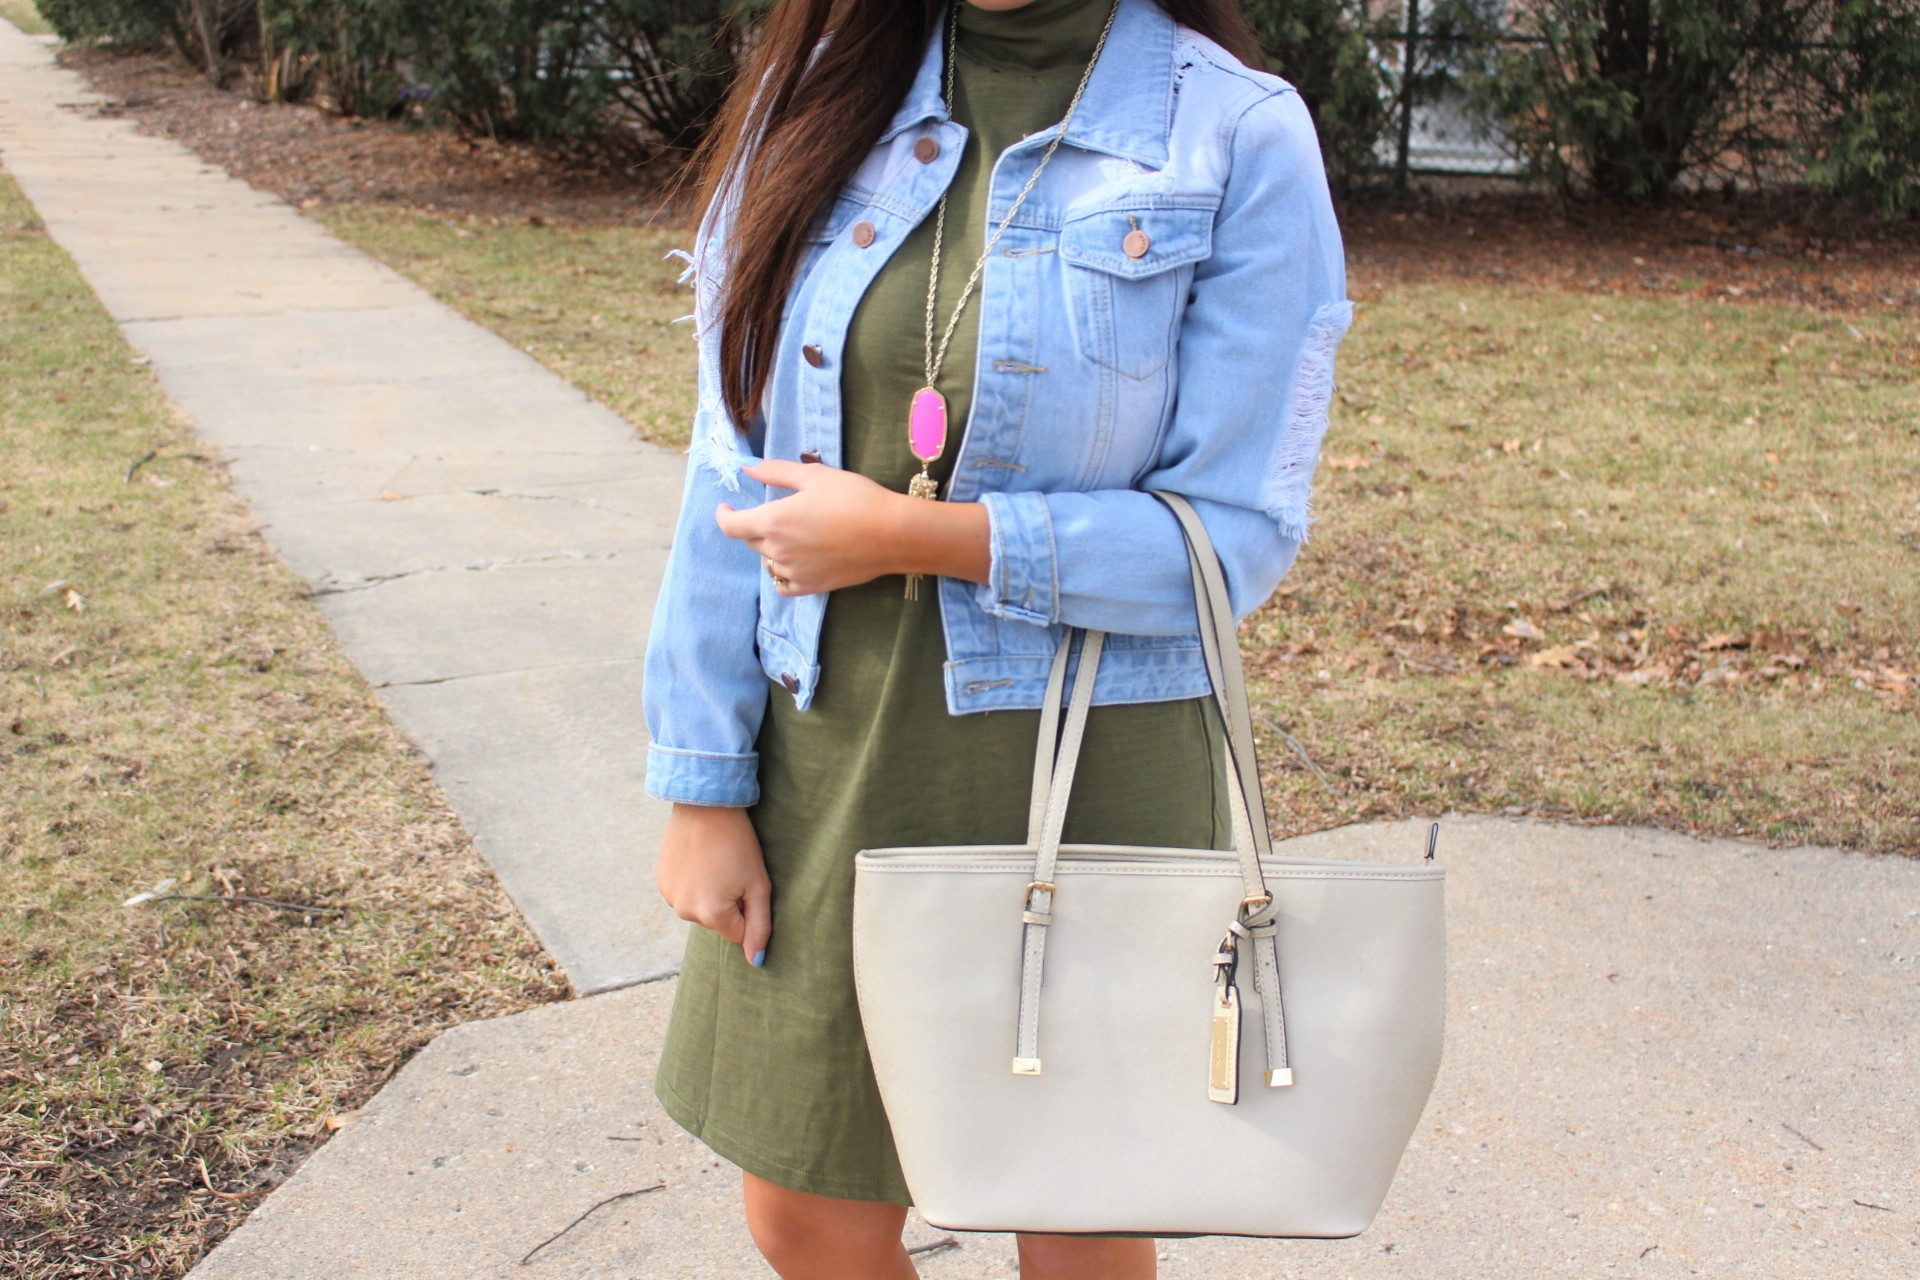 makeme chic military dress ootd jean jacket ALDO handbag by alejandra avila